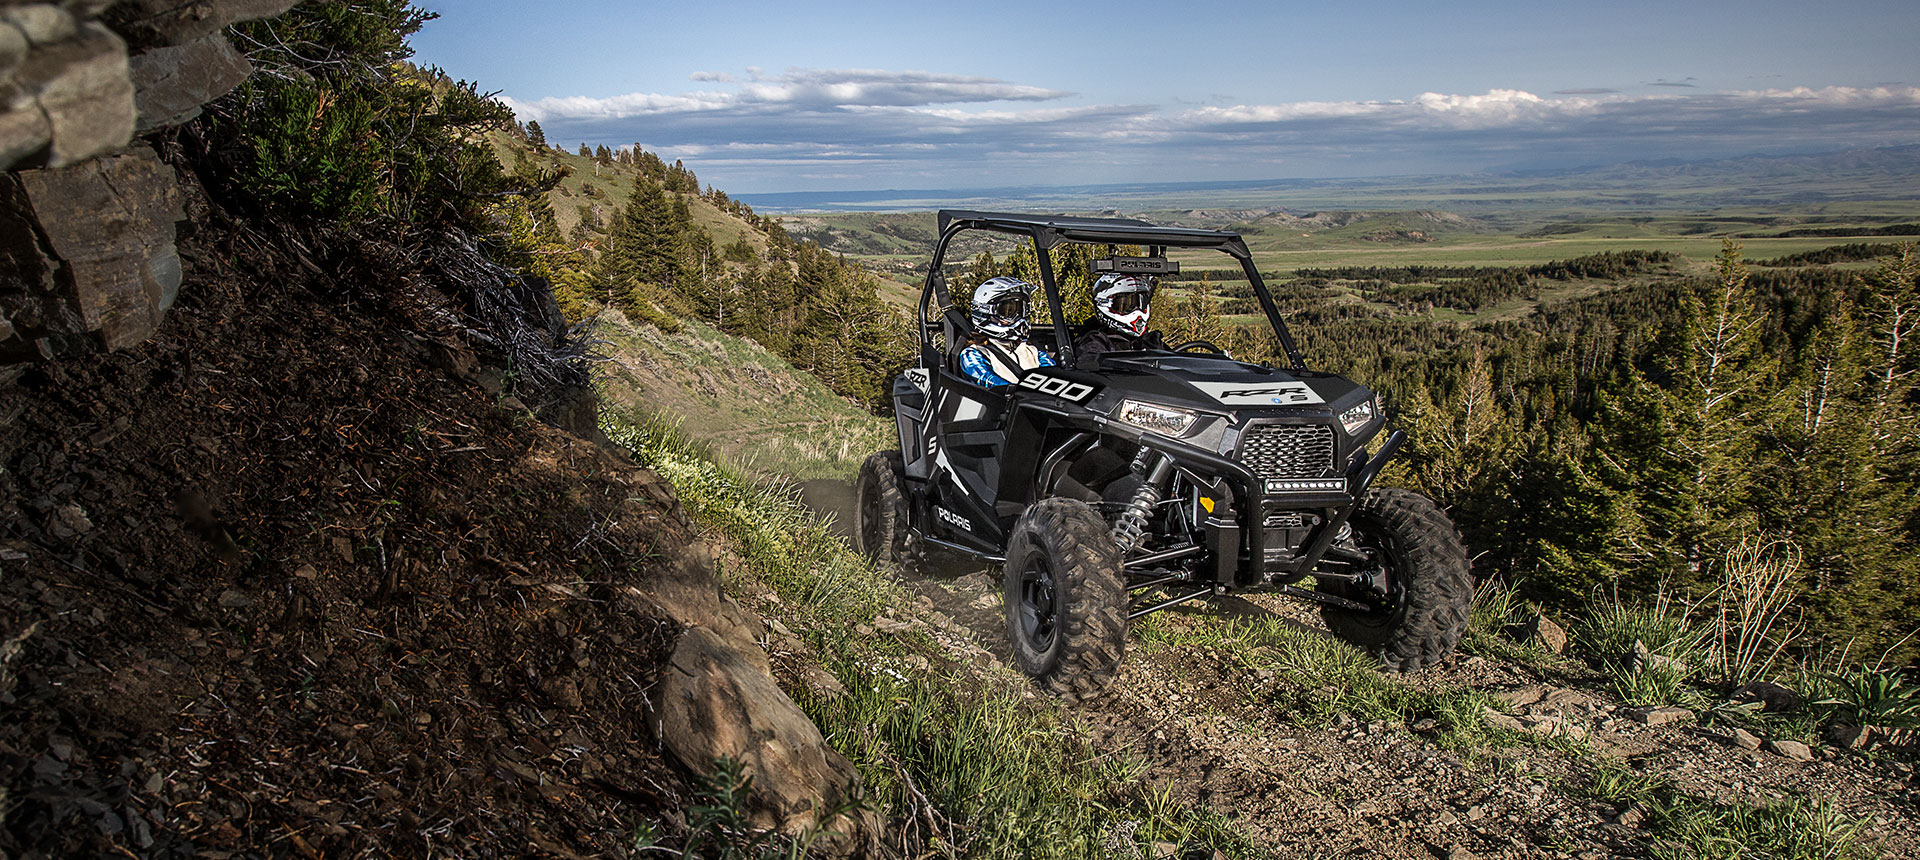 2019 Polaris RZR S 900 in Adams, Massachusetts - Photo 4